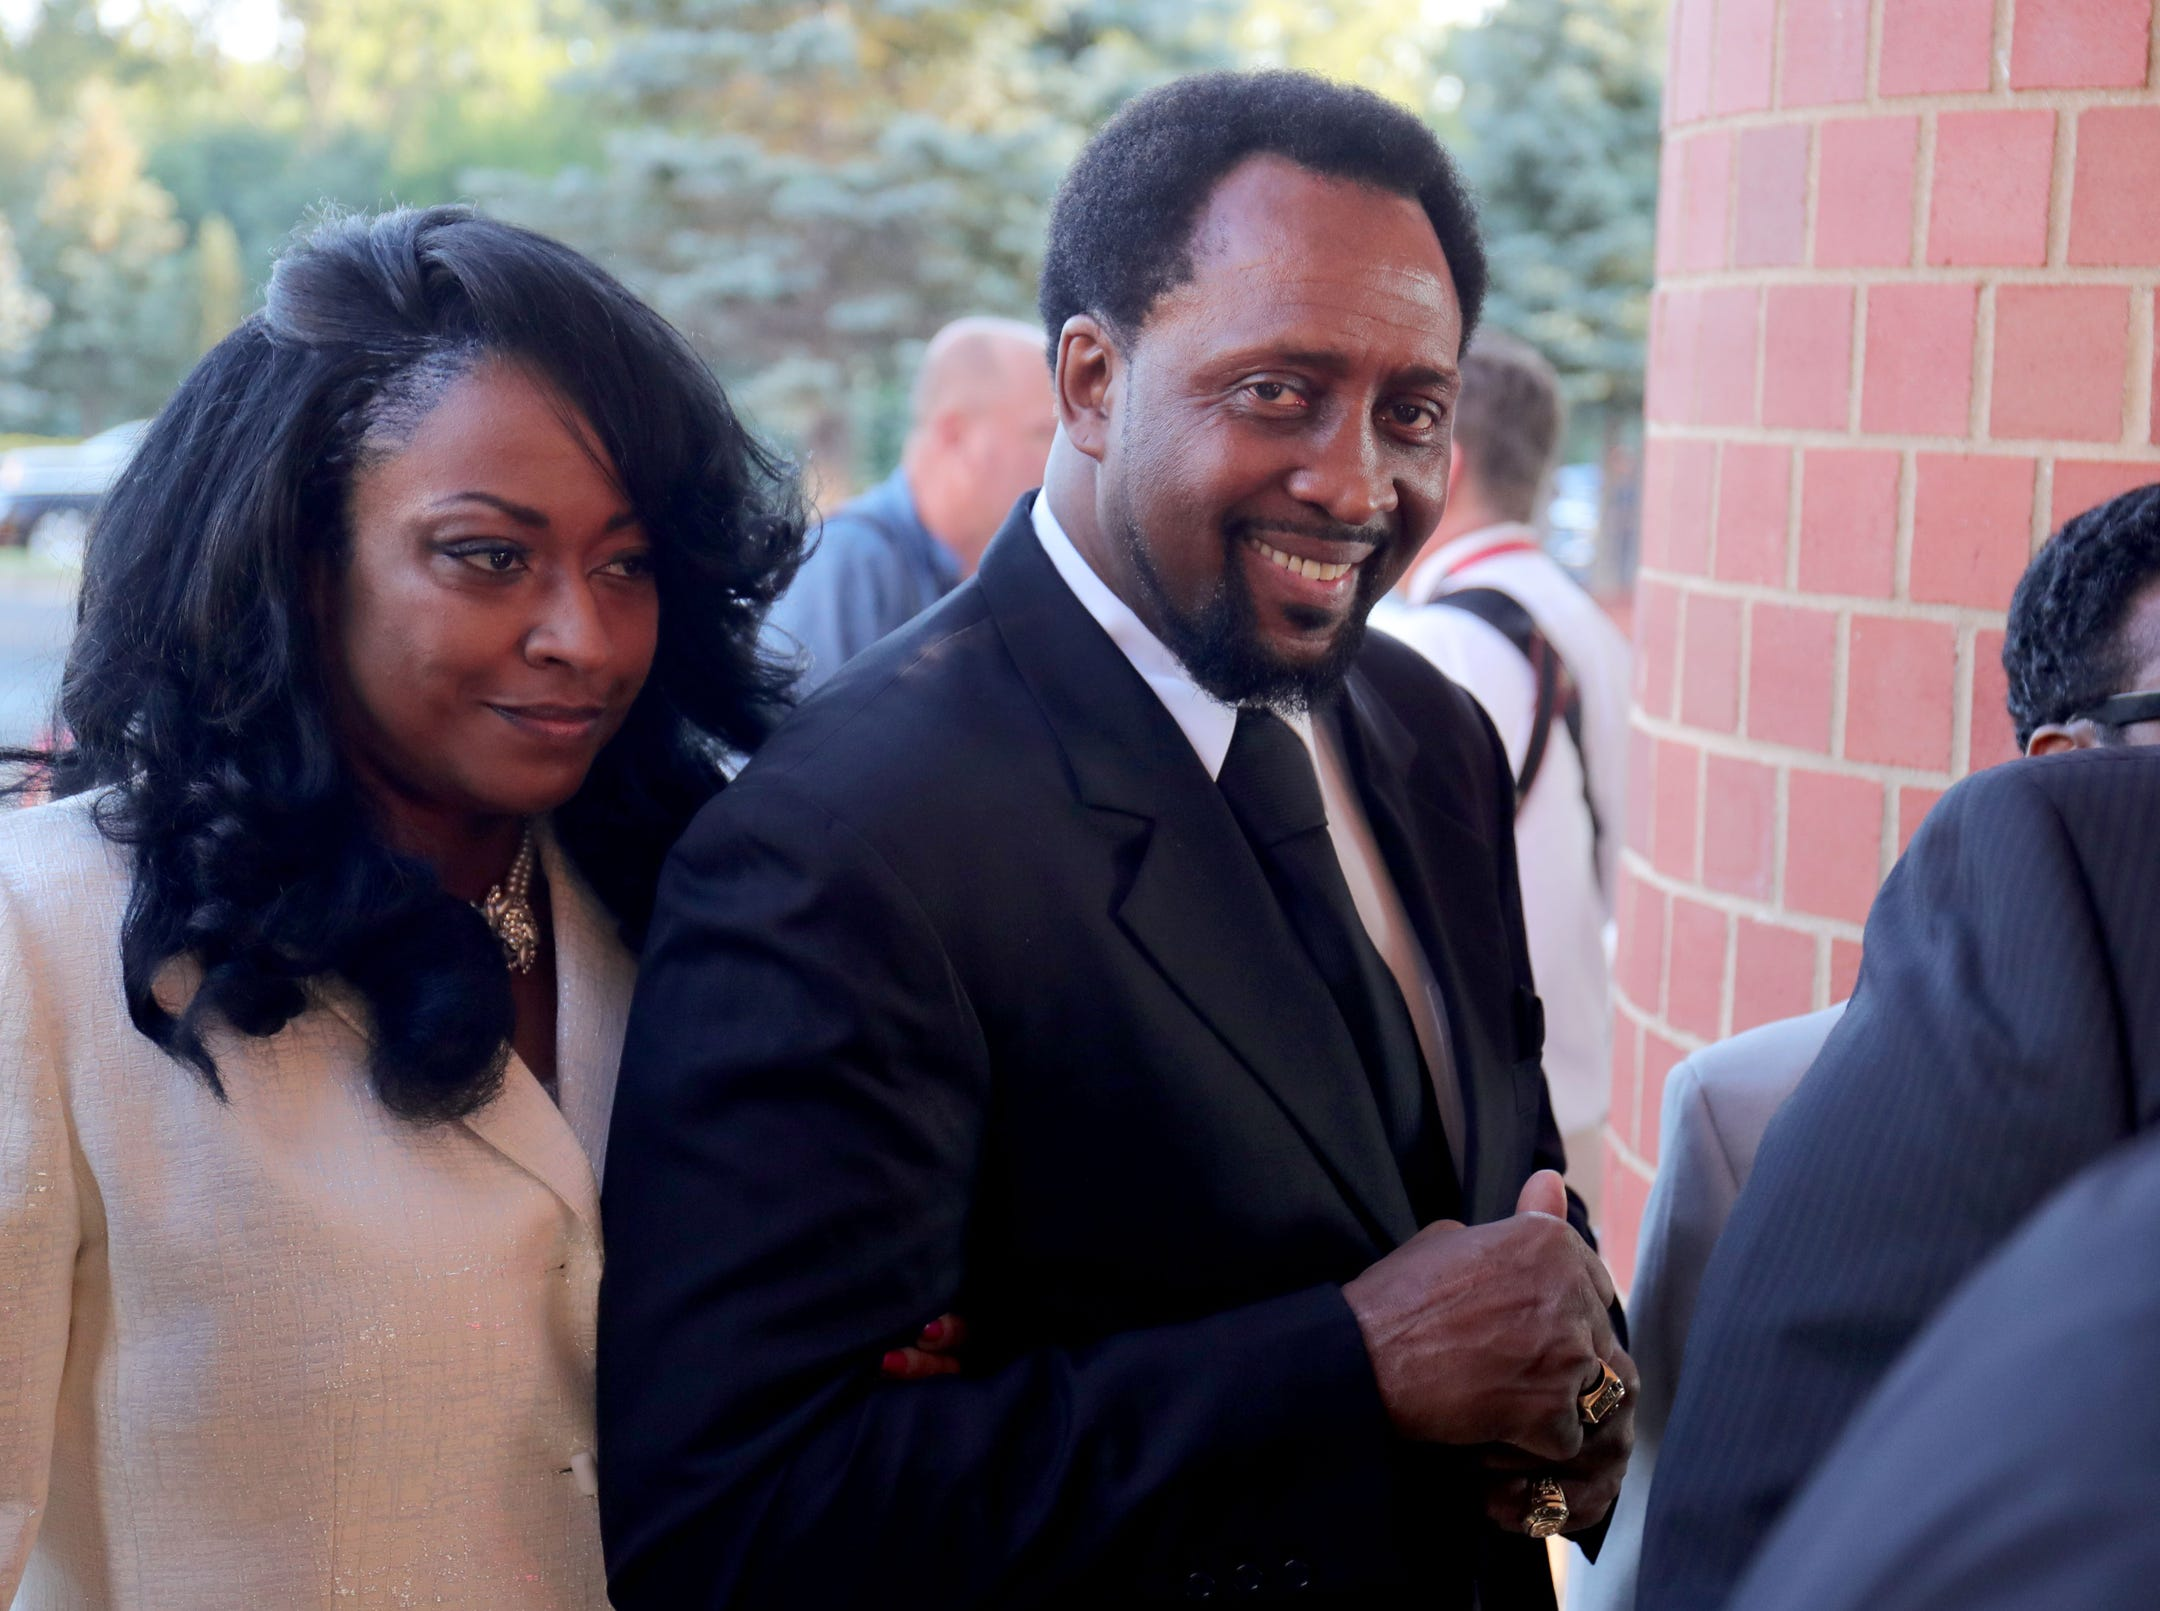 Former professional boxer Thomas Hearns arrives at  Greater Grace Temple in Detroit to pay final respect to Aretha Franklin, Friday, August 31, 2018.  Kirthmond F. Dozier, Detroit Free Press (Via OlyDrop)